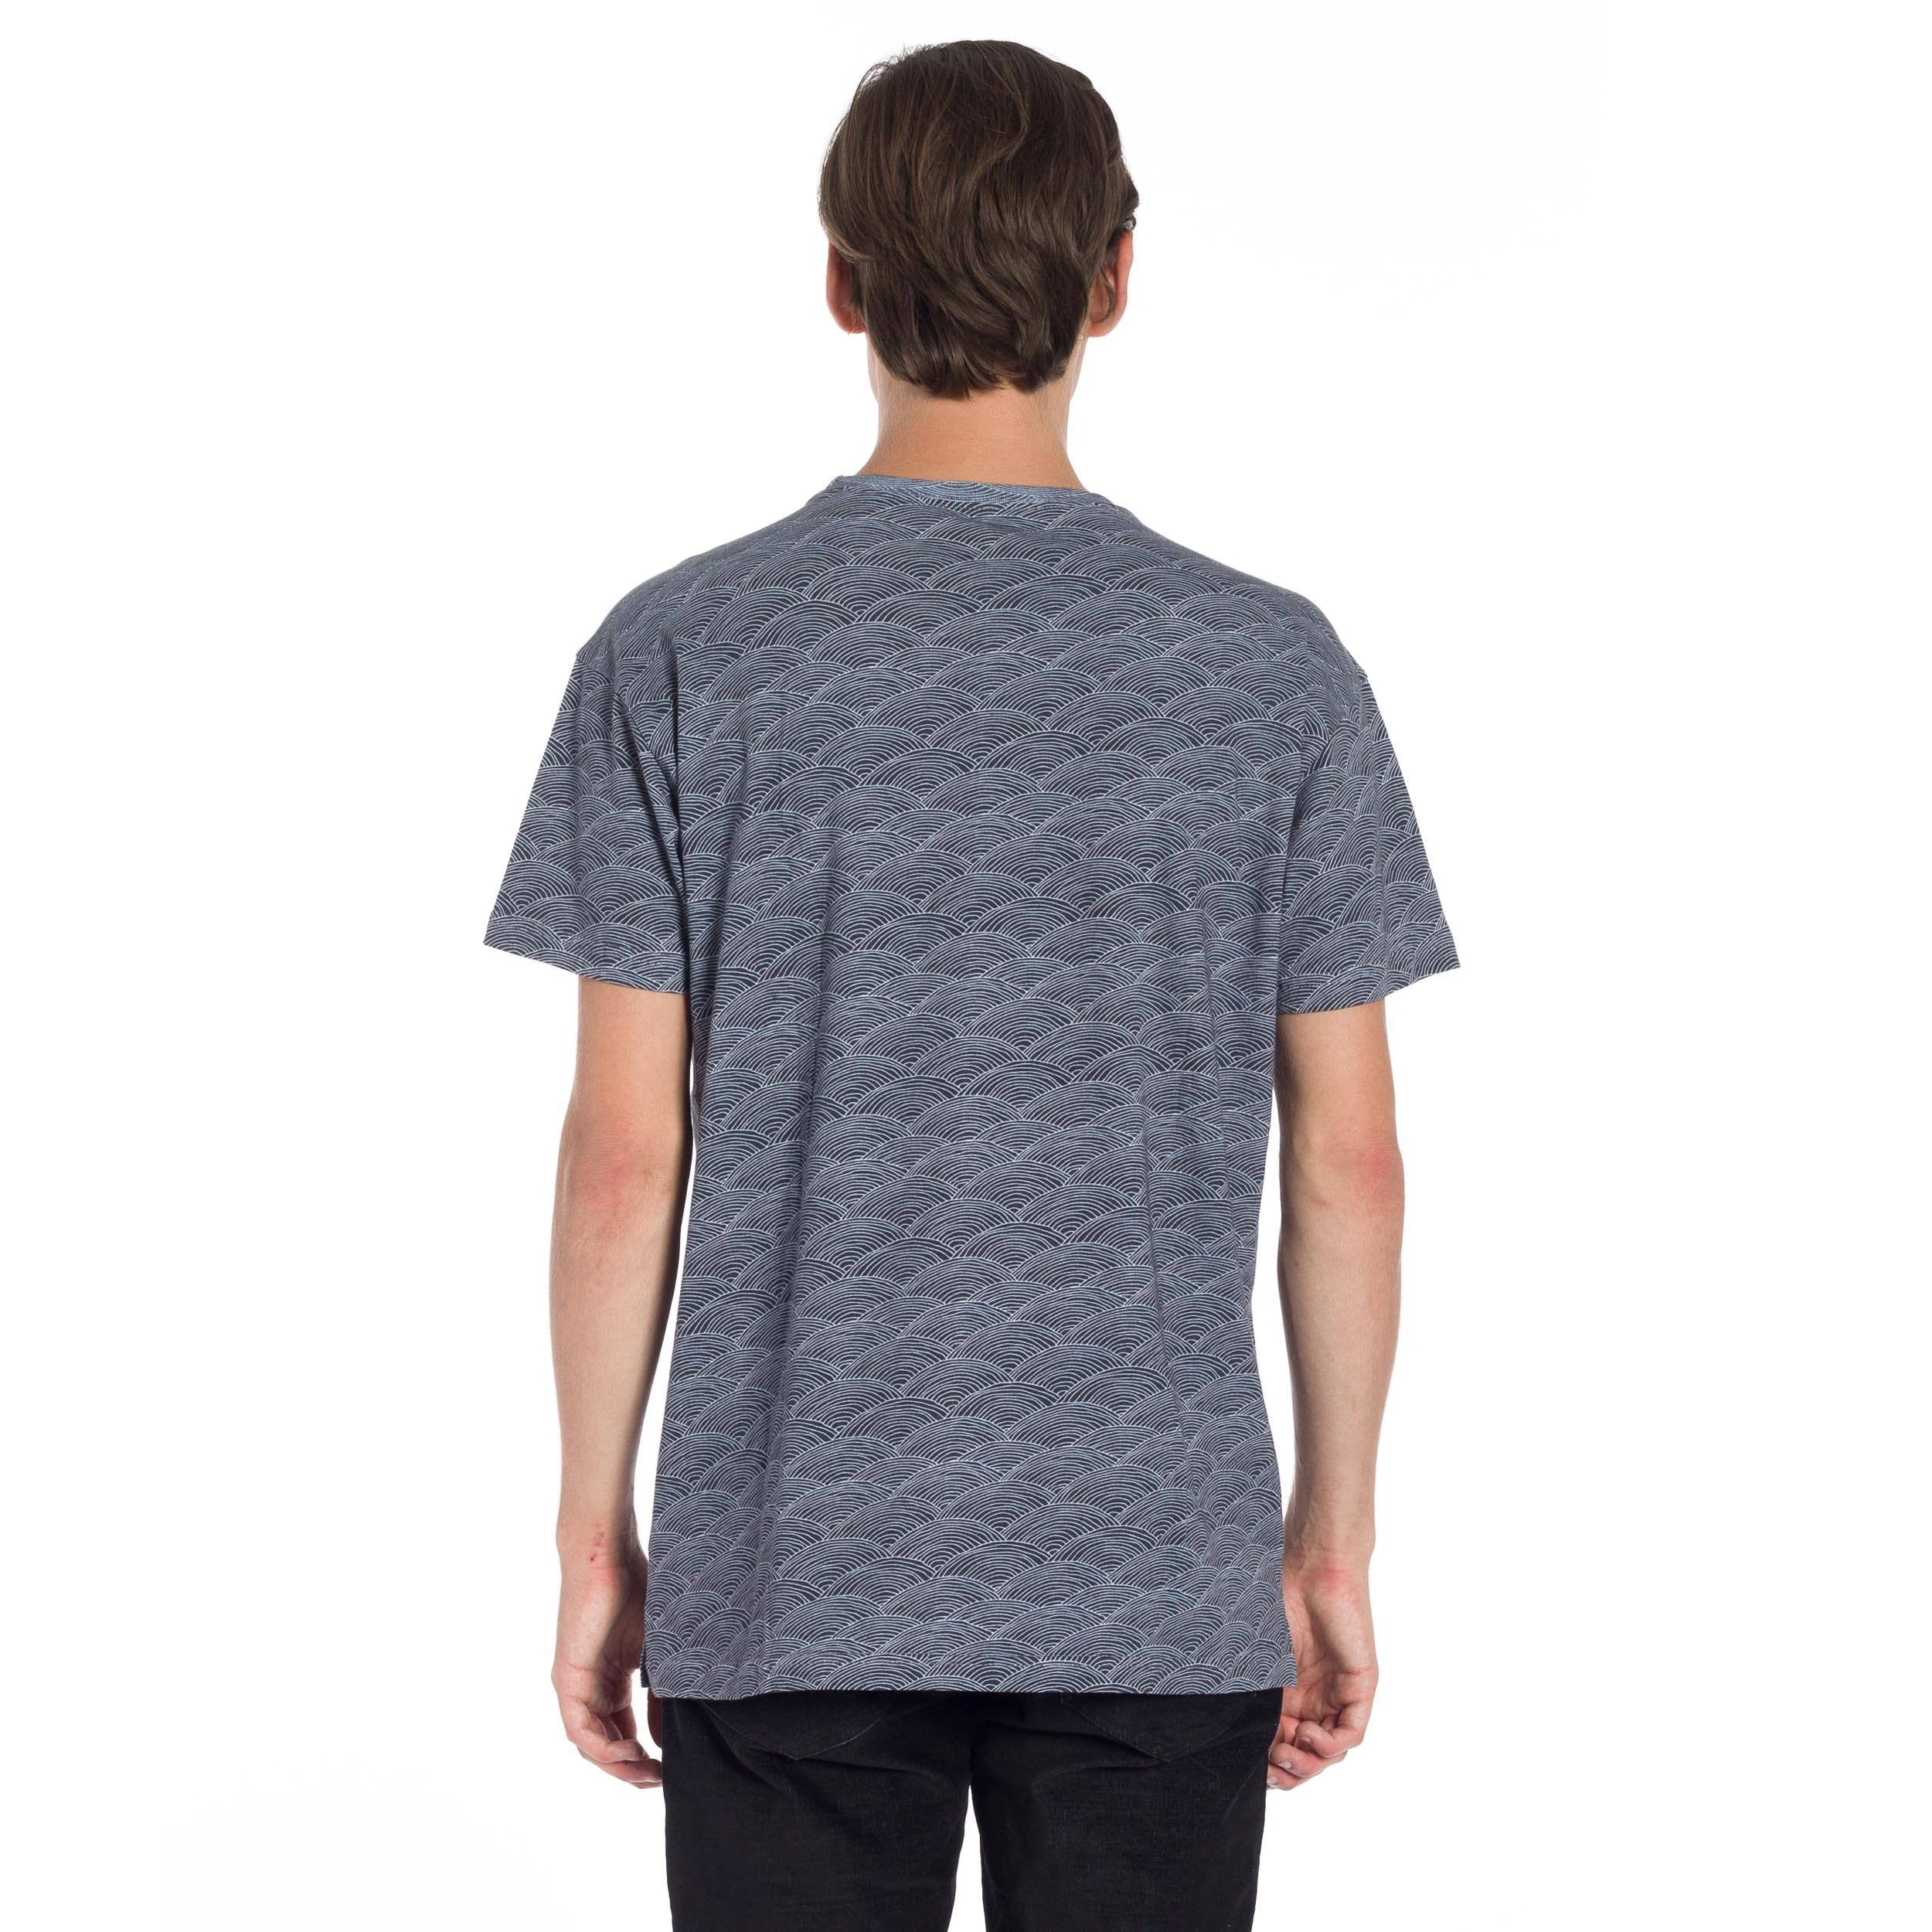 Summit Knit T-Shirt - Black